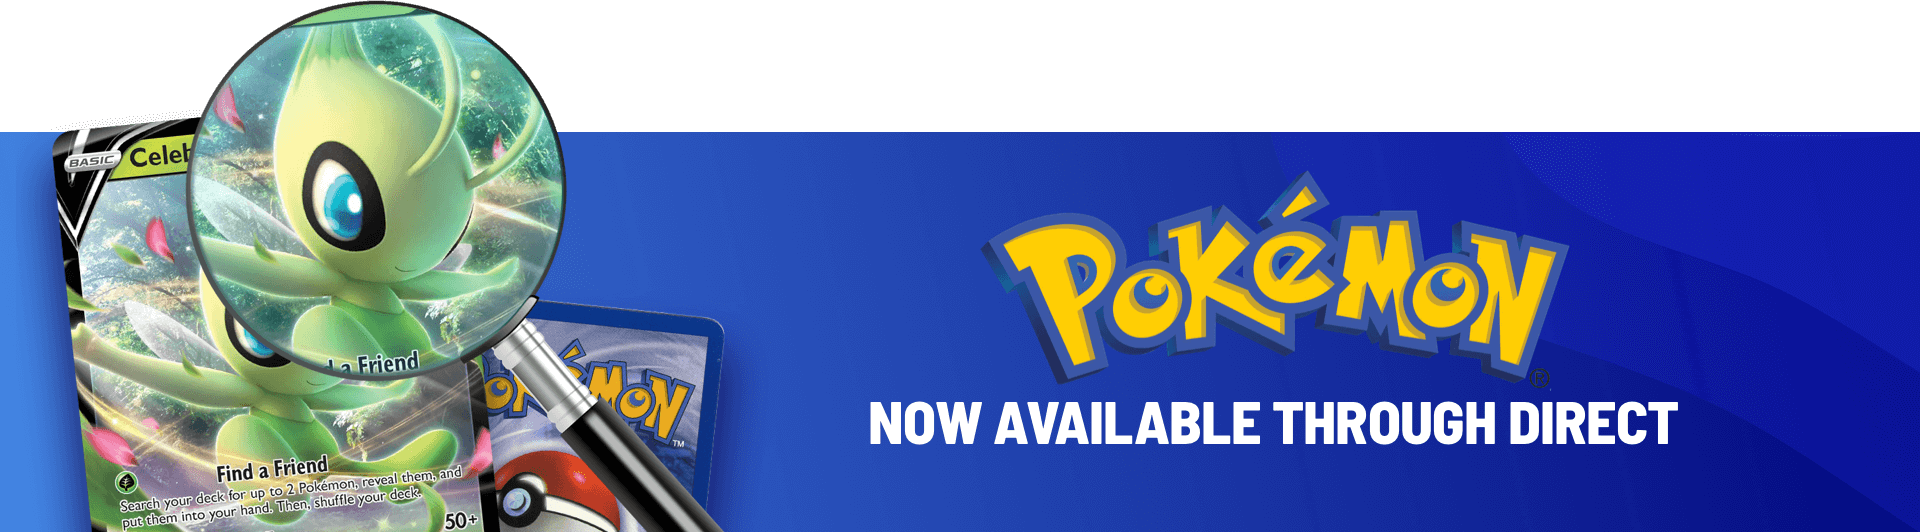 Pokémon is now available through TCGplayer Direct!